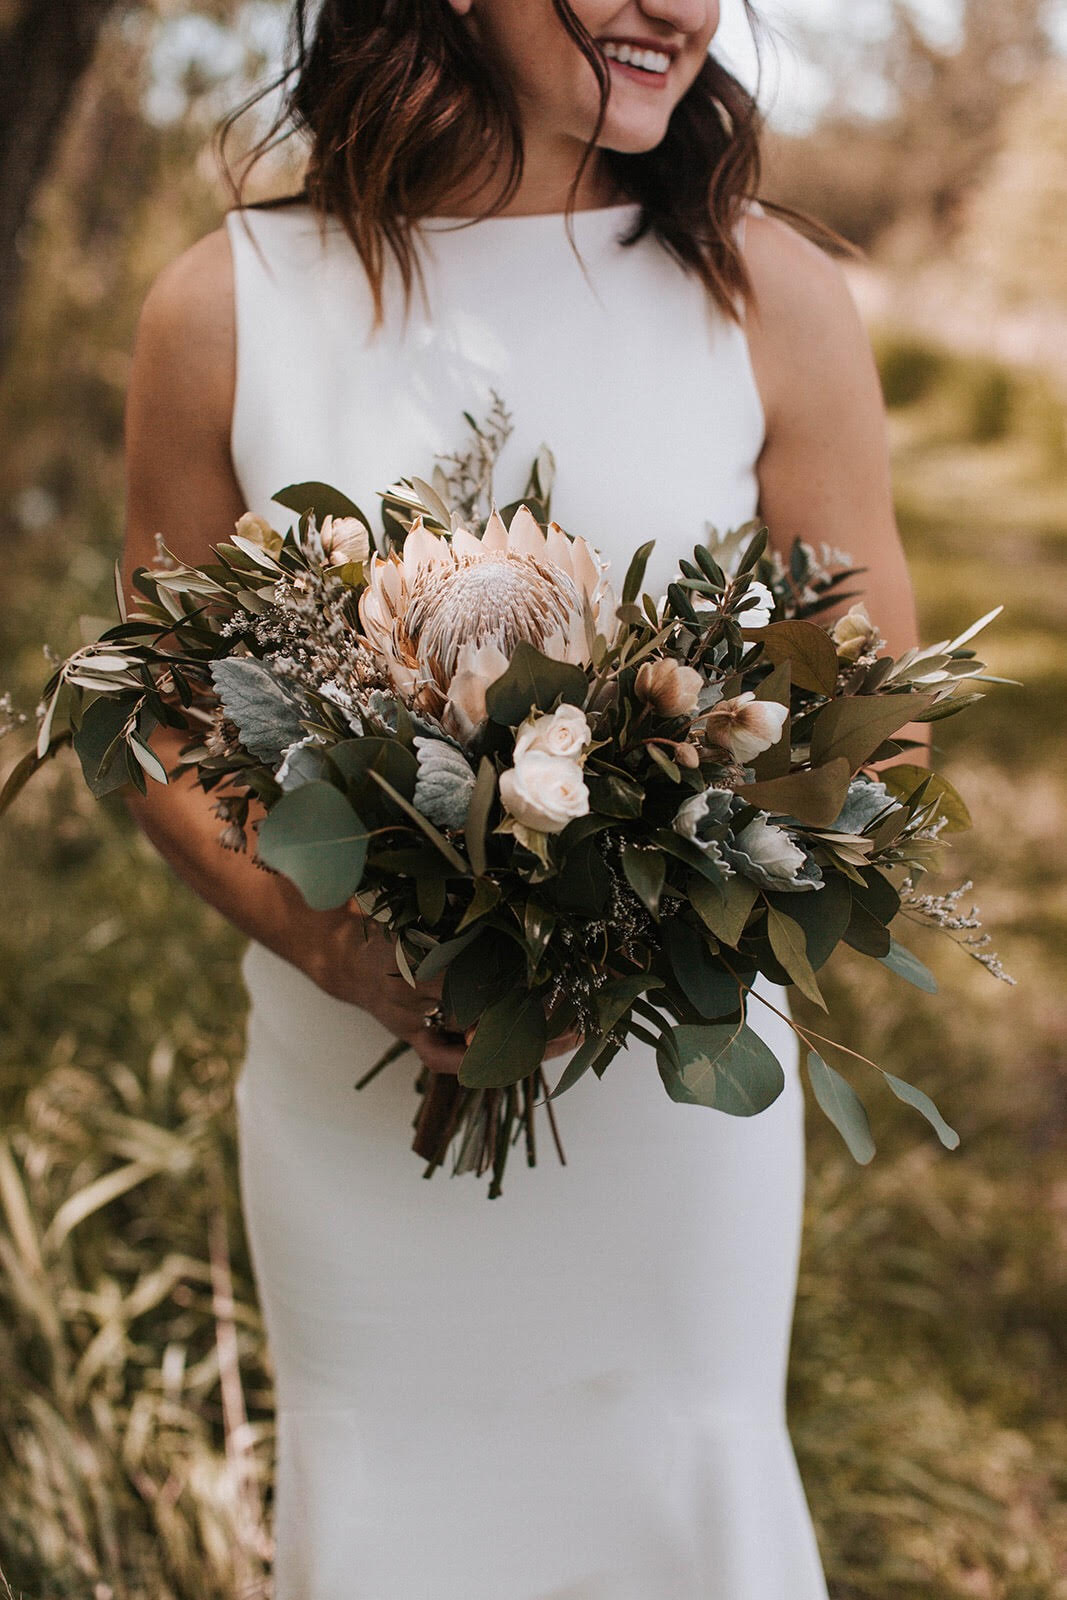 """Bailey // Bride - """"I just wanted to send a HUGE thank you for your wonderful work on the flowers. I was/am OBSESSED. They exceeded all expectations!!""""PHOTO: HALEY CHICOINE PHOTOGRAPHY"""